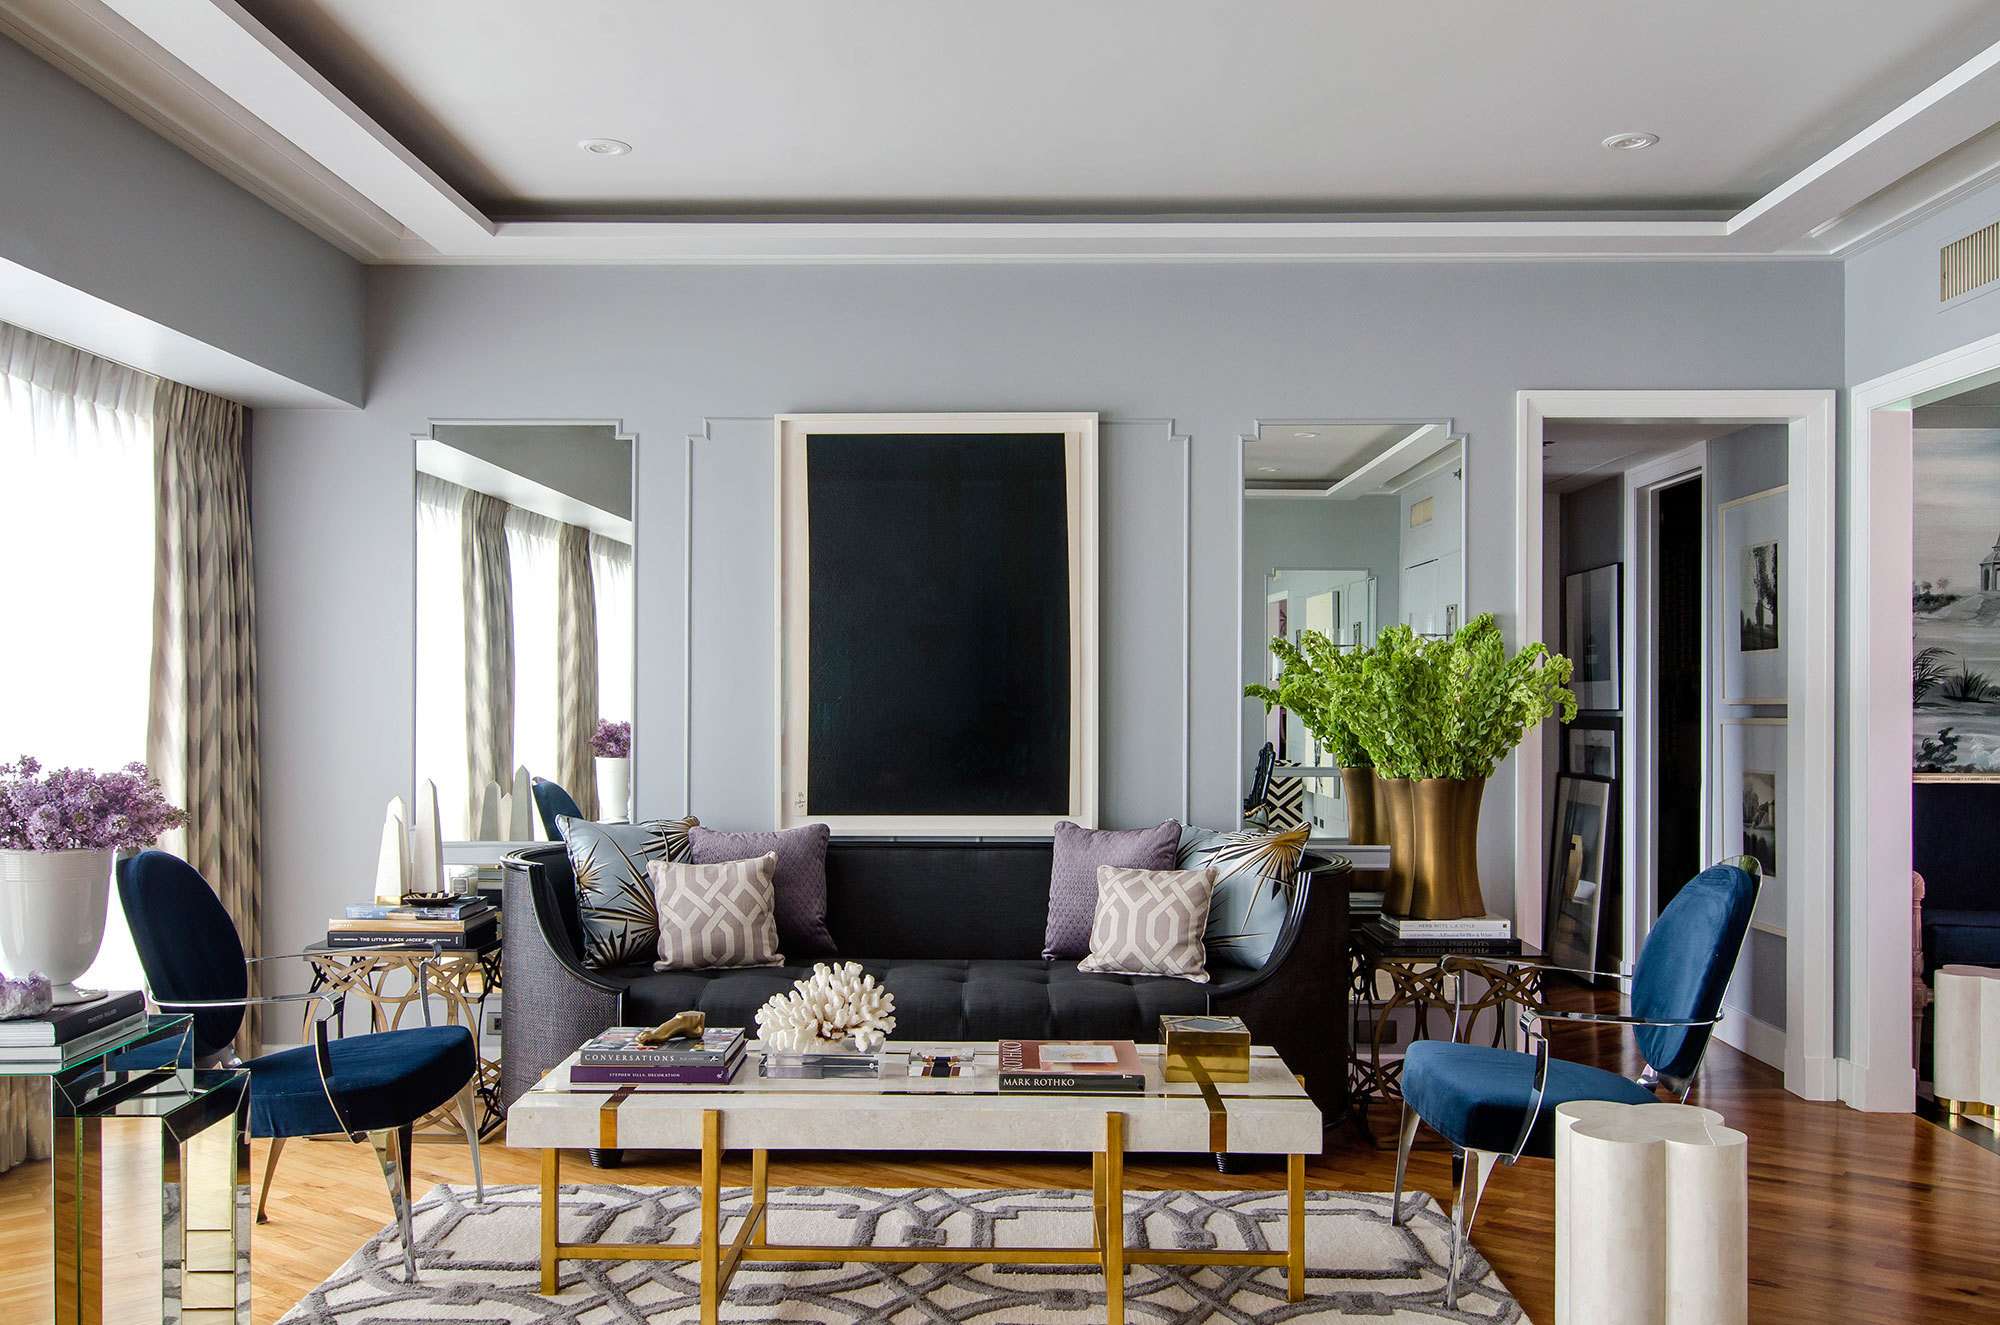 A brass-and-stone cocktail table of his own design takes center stage at the home of Blue Carreon in Manila, Philippines.